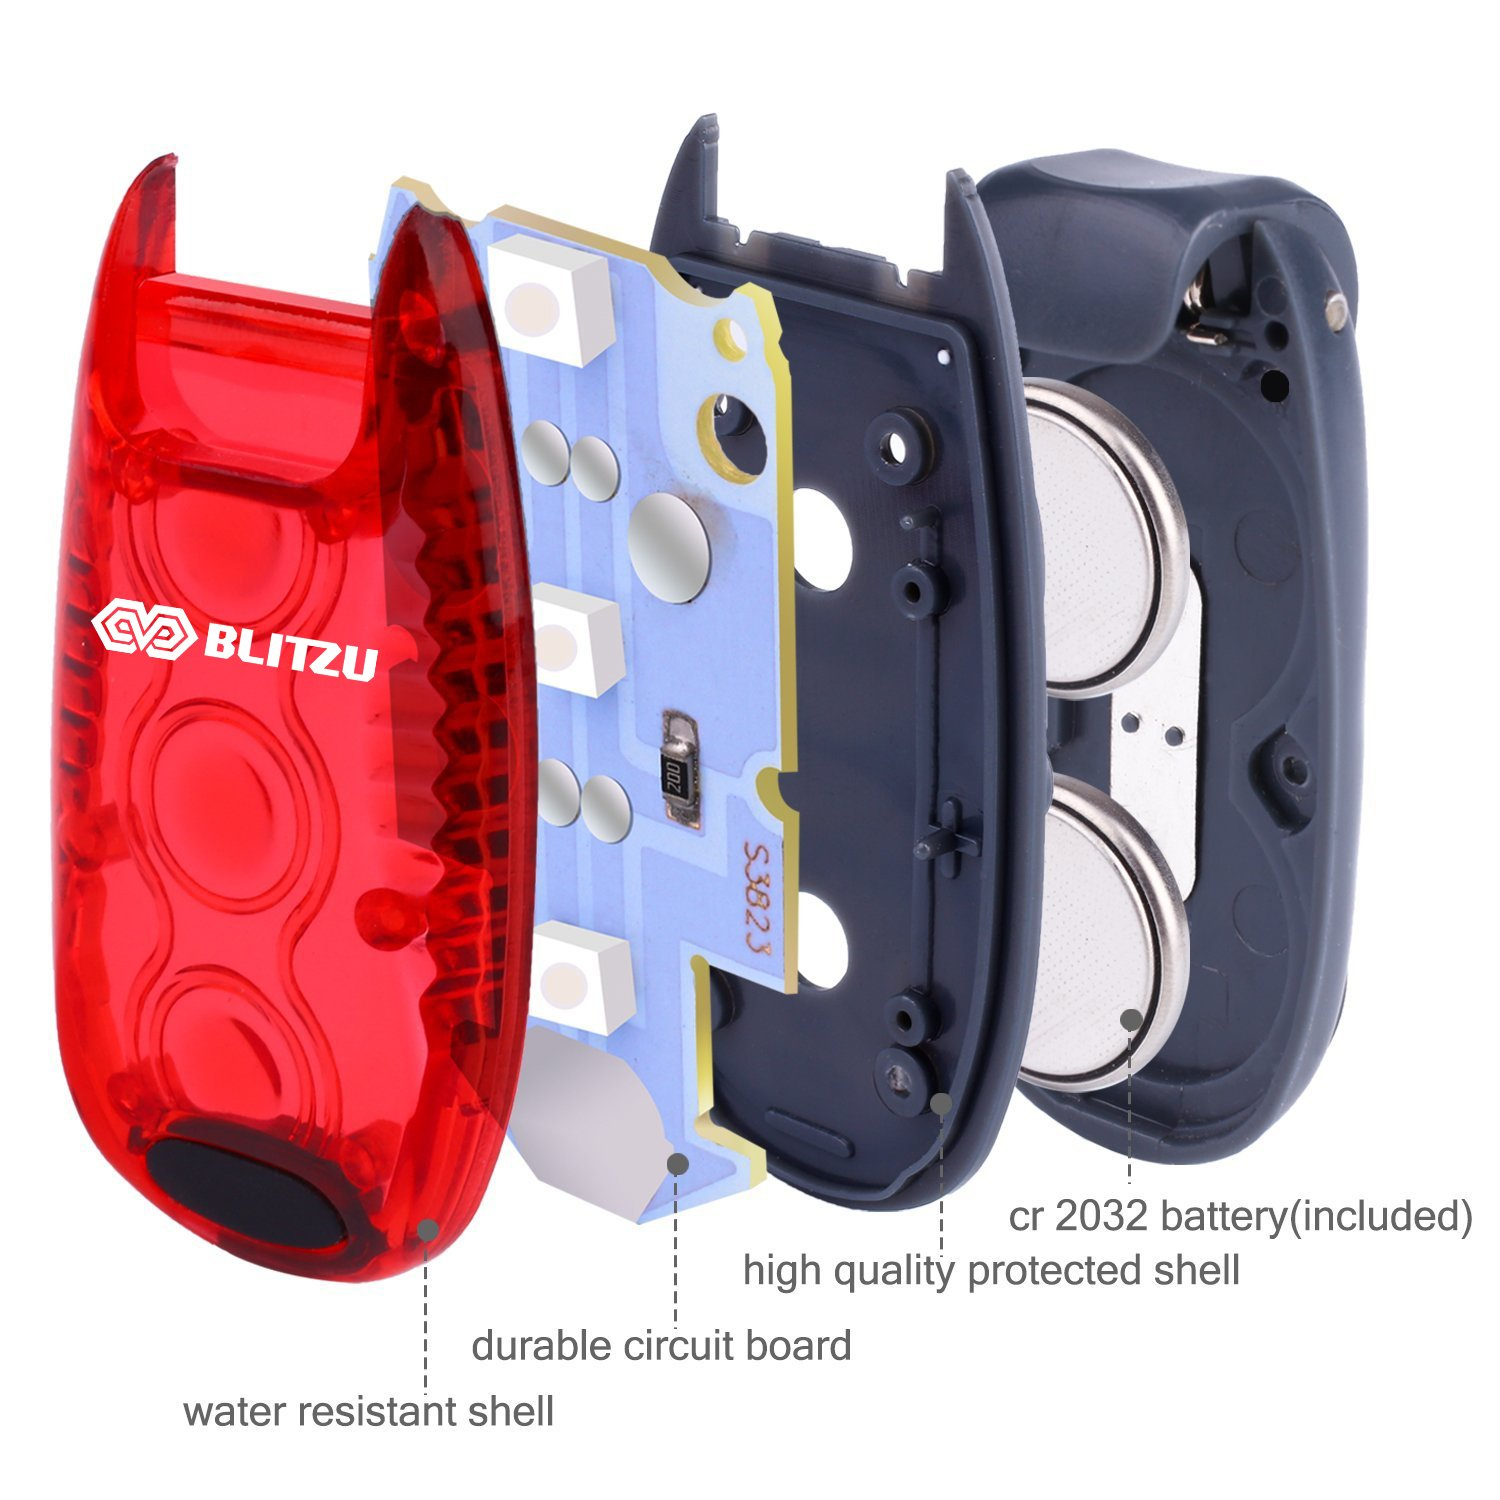 Dogs Joggers Free Bonuses Nighttime Bike Bicycle Cycling Tail Light Accessories for Your Reflective Gear Night time BLITZU Cyborg LED Safety Light 2 Pack Walking The Best Accessories Your Reflective Gear Clip On Running Lights Runner Kids